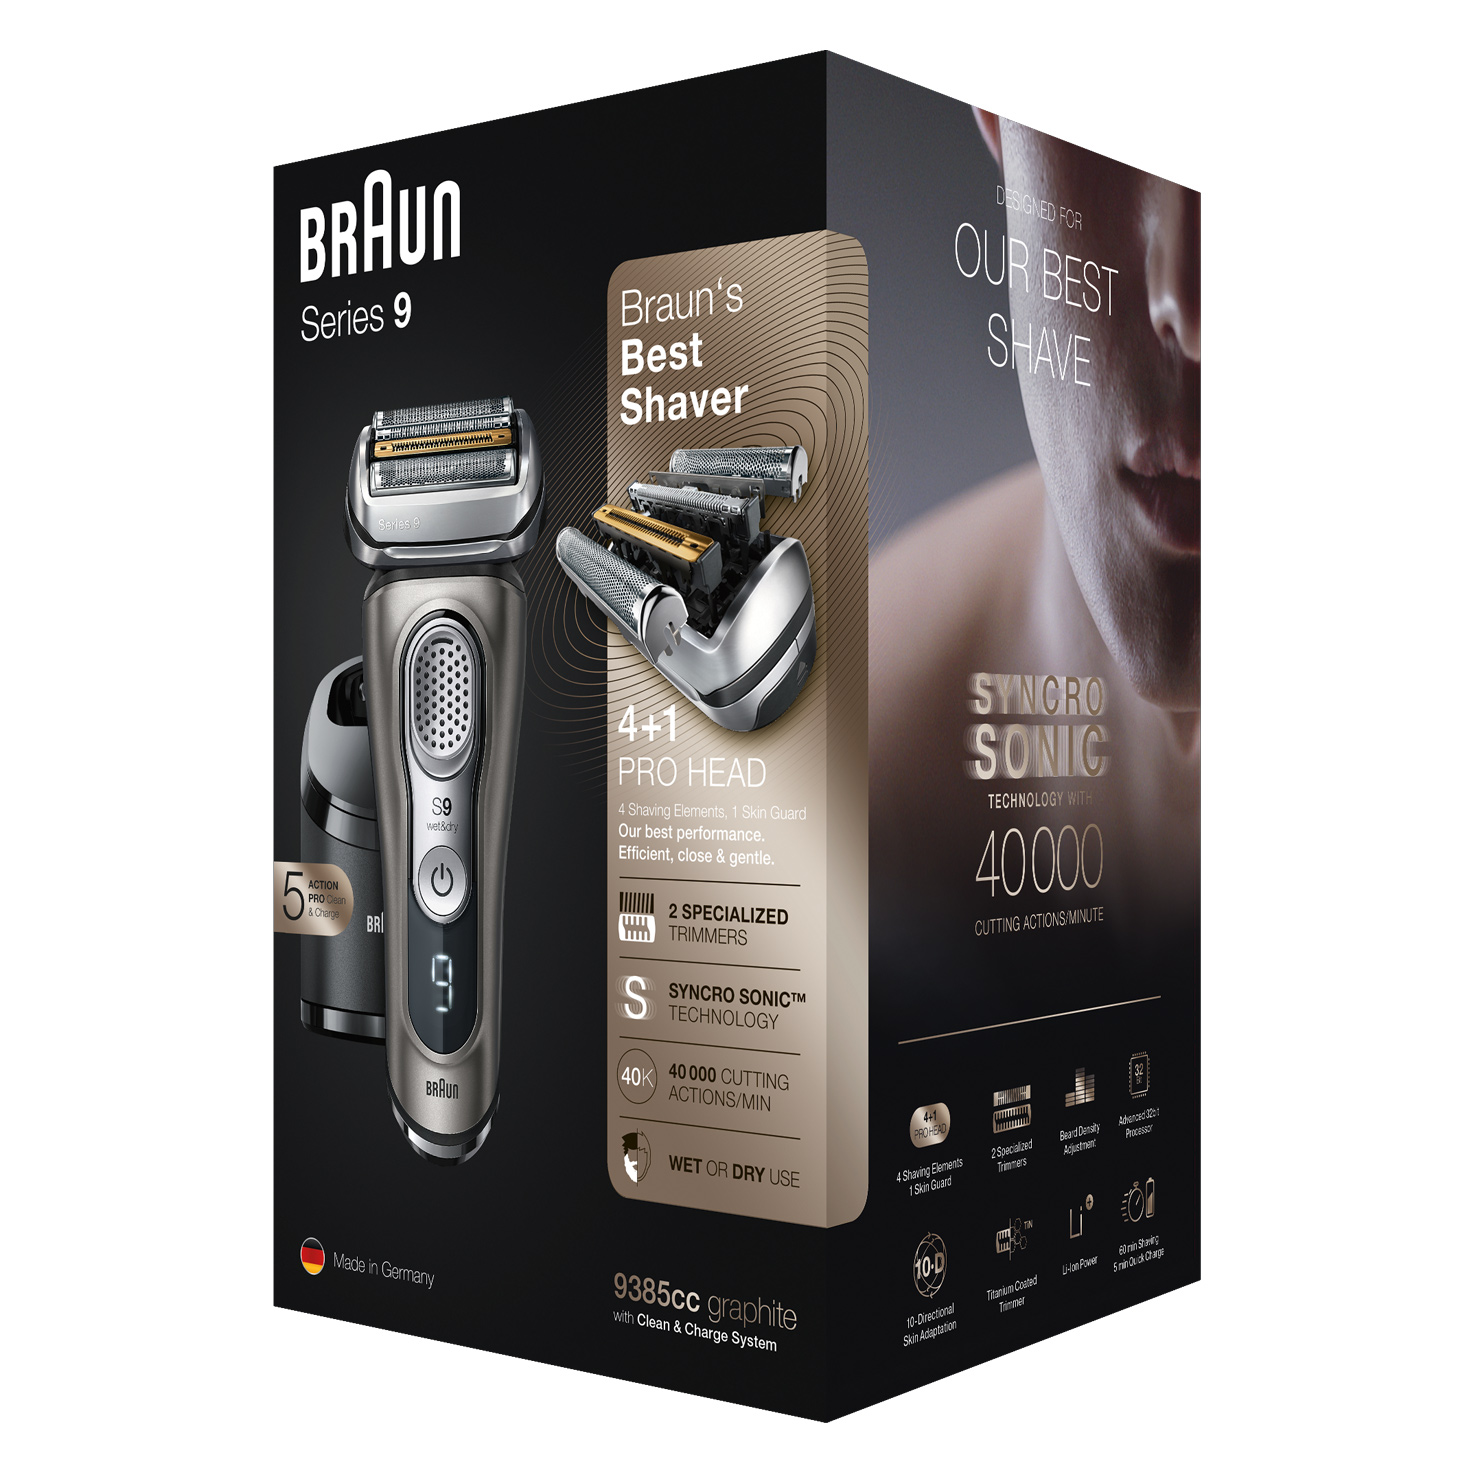 Series 9 9385cc shaver - Packaging